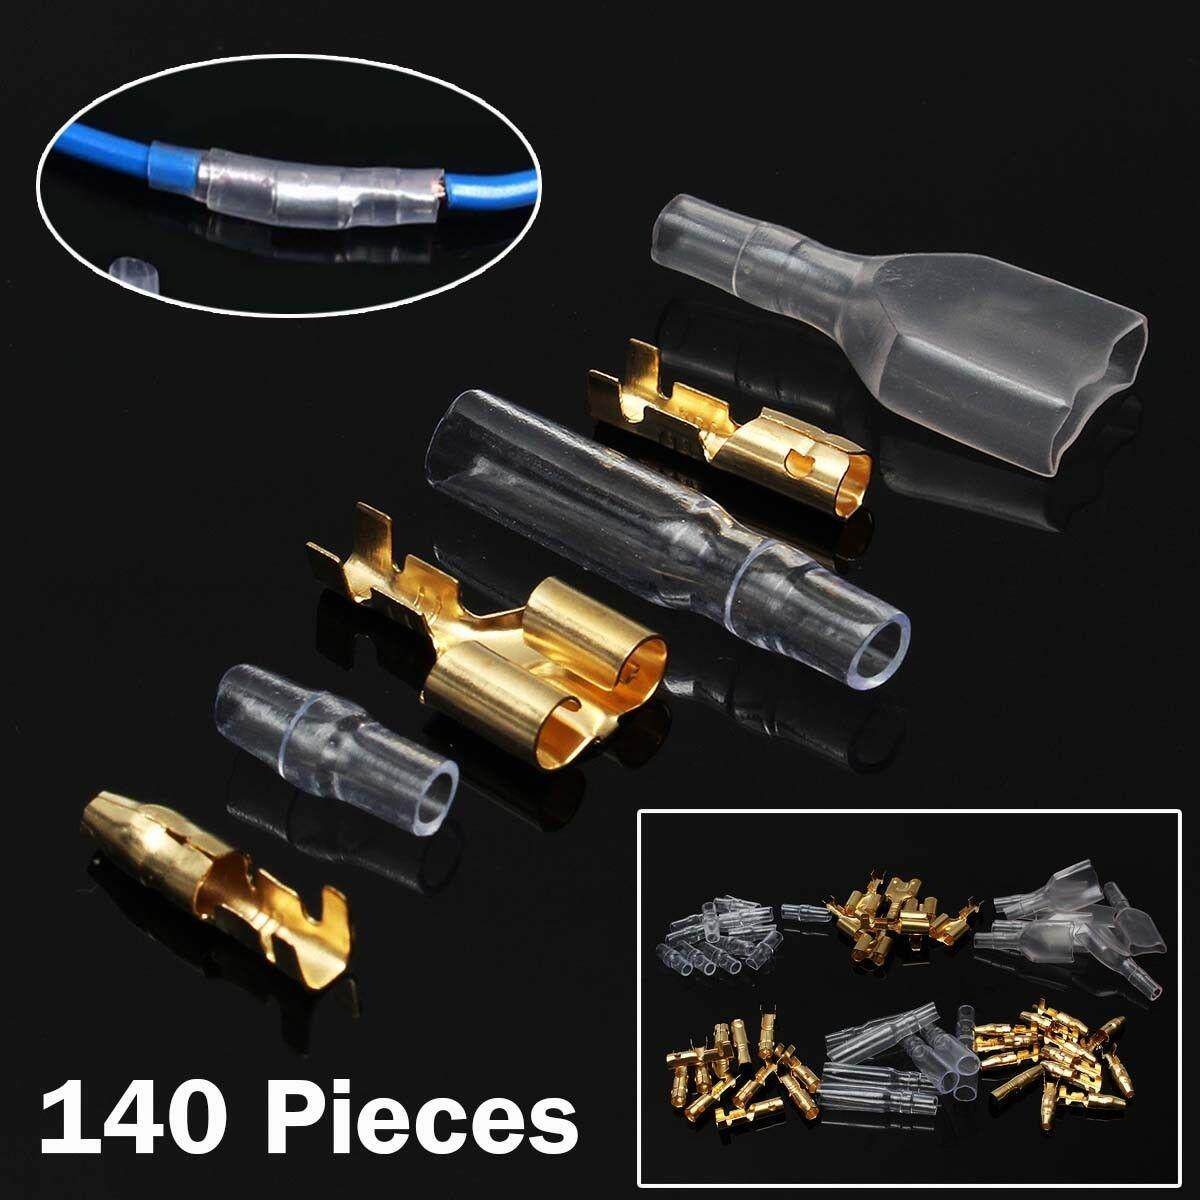 Valueshopping-mal 140pcs Car Male Female Electric Terminal Connectors &  Terminal Insulated Covers